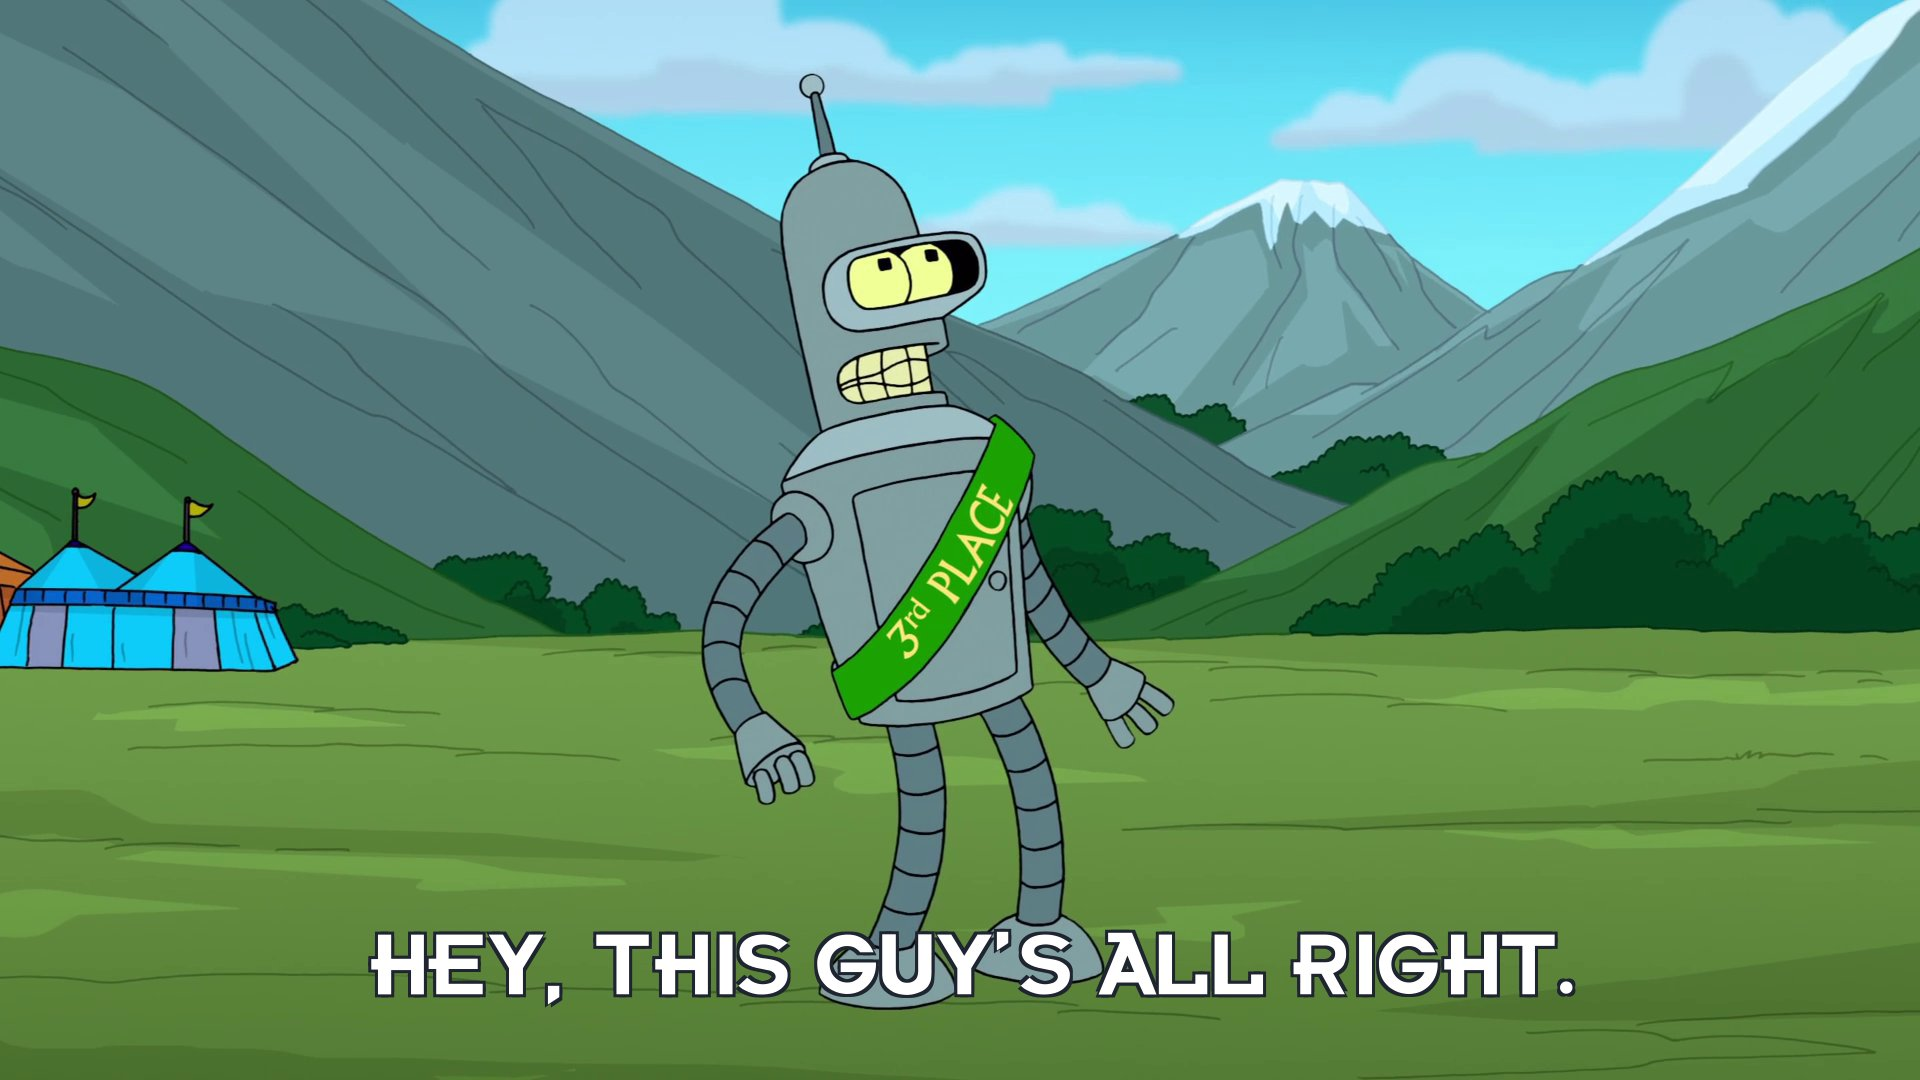 Bender Bending Rodriguez: Hey, this guy's all right.